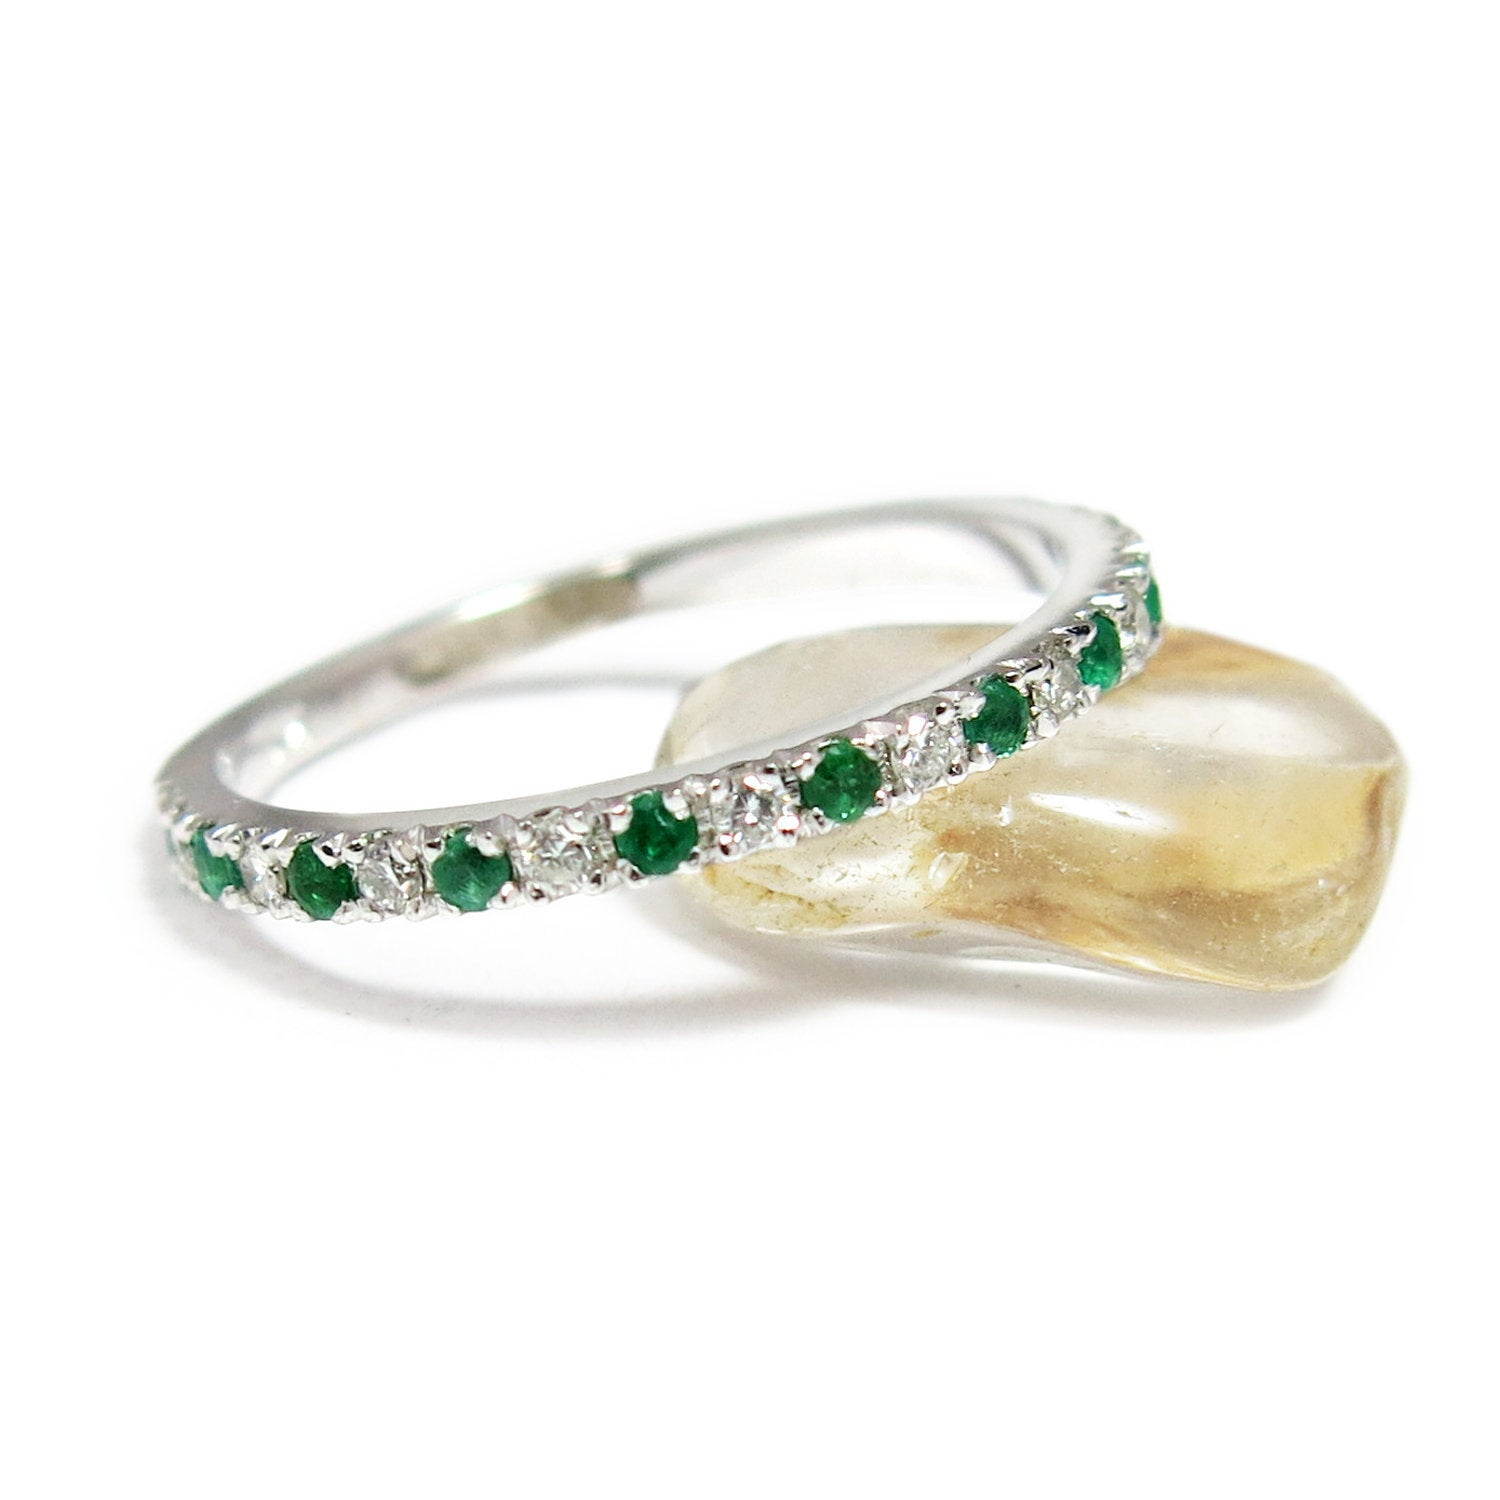 Stackable Gemstone Ring, White Gold Wedding Band, Gold Gemstone Ring,  Promise Ring, Emerald Ring, Gold Eternity Ring, Stackable Emerald Ring In Most Popular Sparkling & Polished Lines Rings (View 24 of 25)